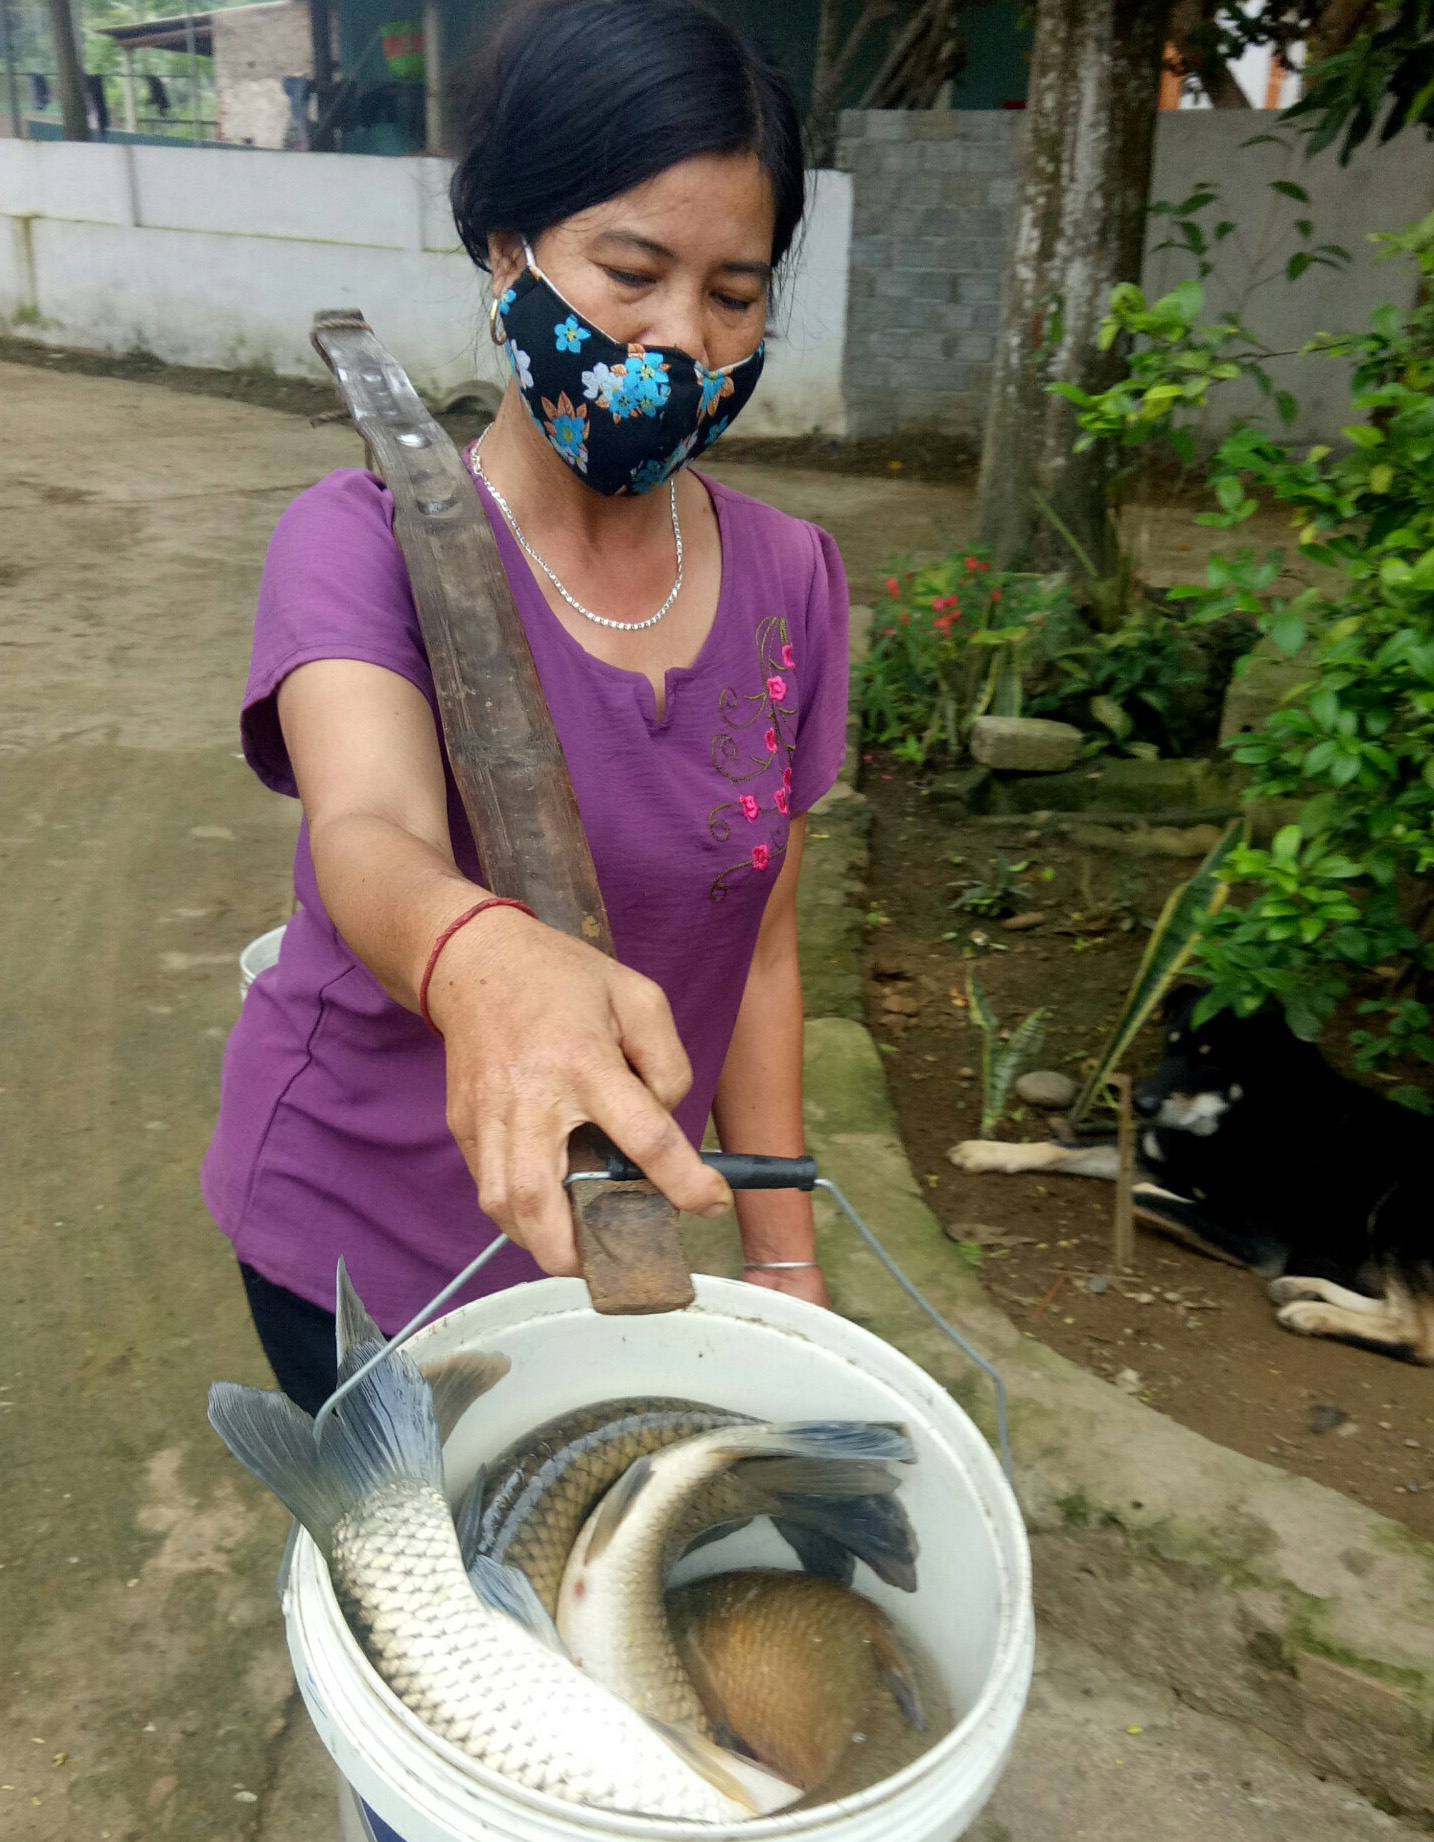 A woman carries buckets containing dead fish in Cam Thuy District, Thanh Hoa Province, Vietnam, April 14, 2021. Photo: Ha Dong / Tuoi Tre